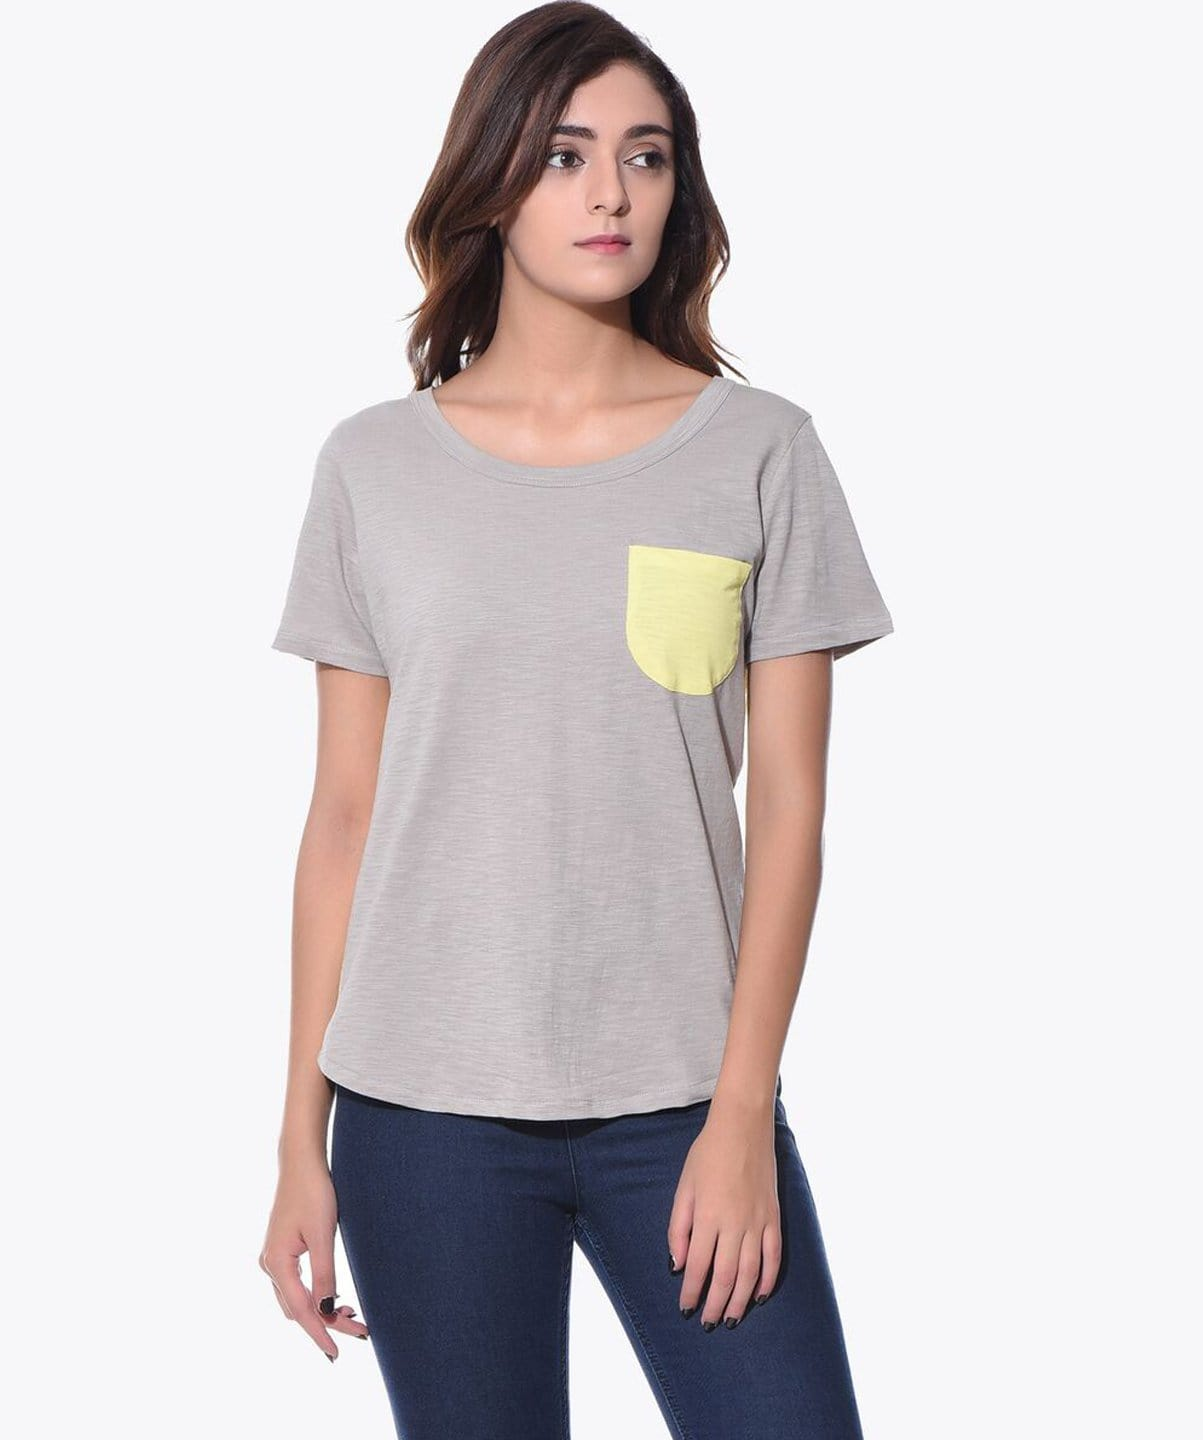 Uptownie Solid Grey Yellow Color Block T-shirt (cotton) 1 summer sale